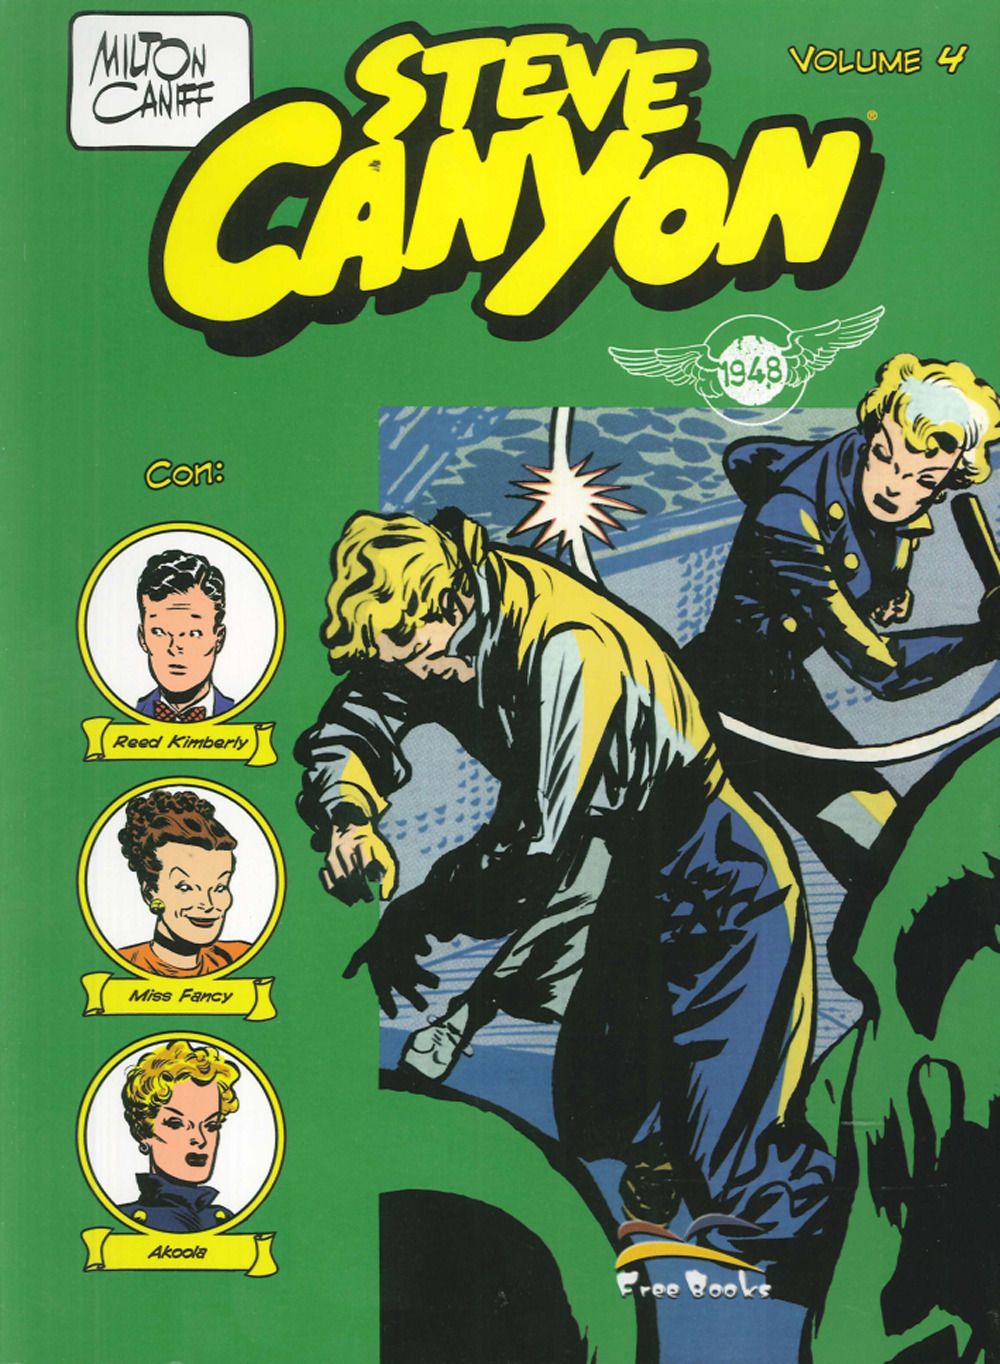 Image of Steve Canyon. Vol. 4